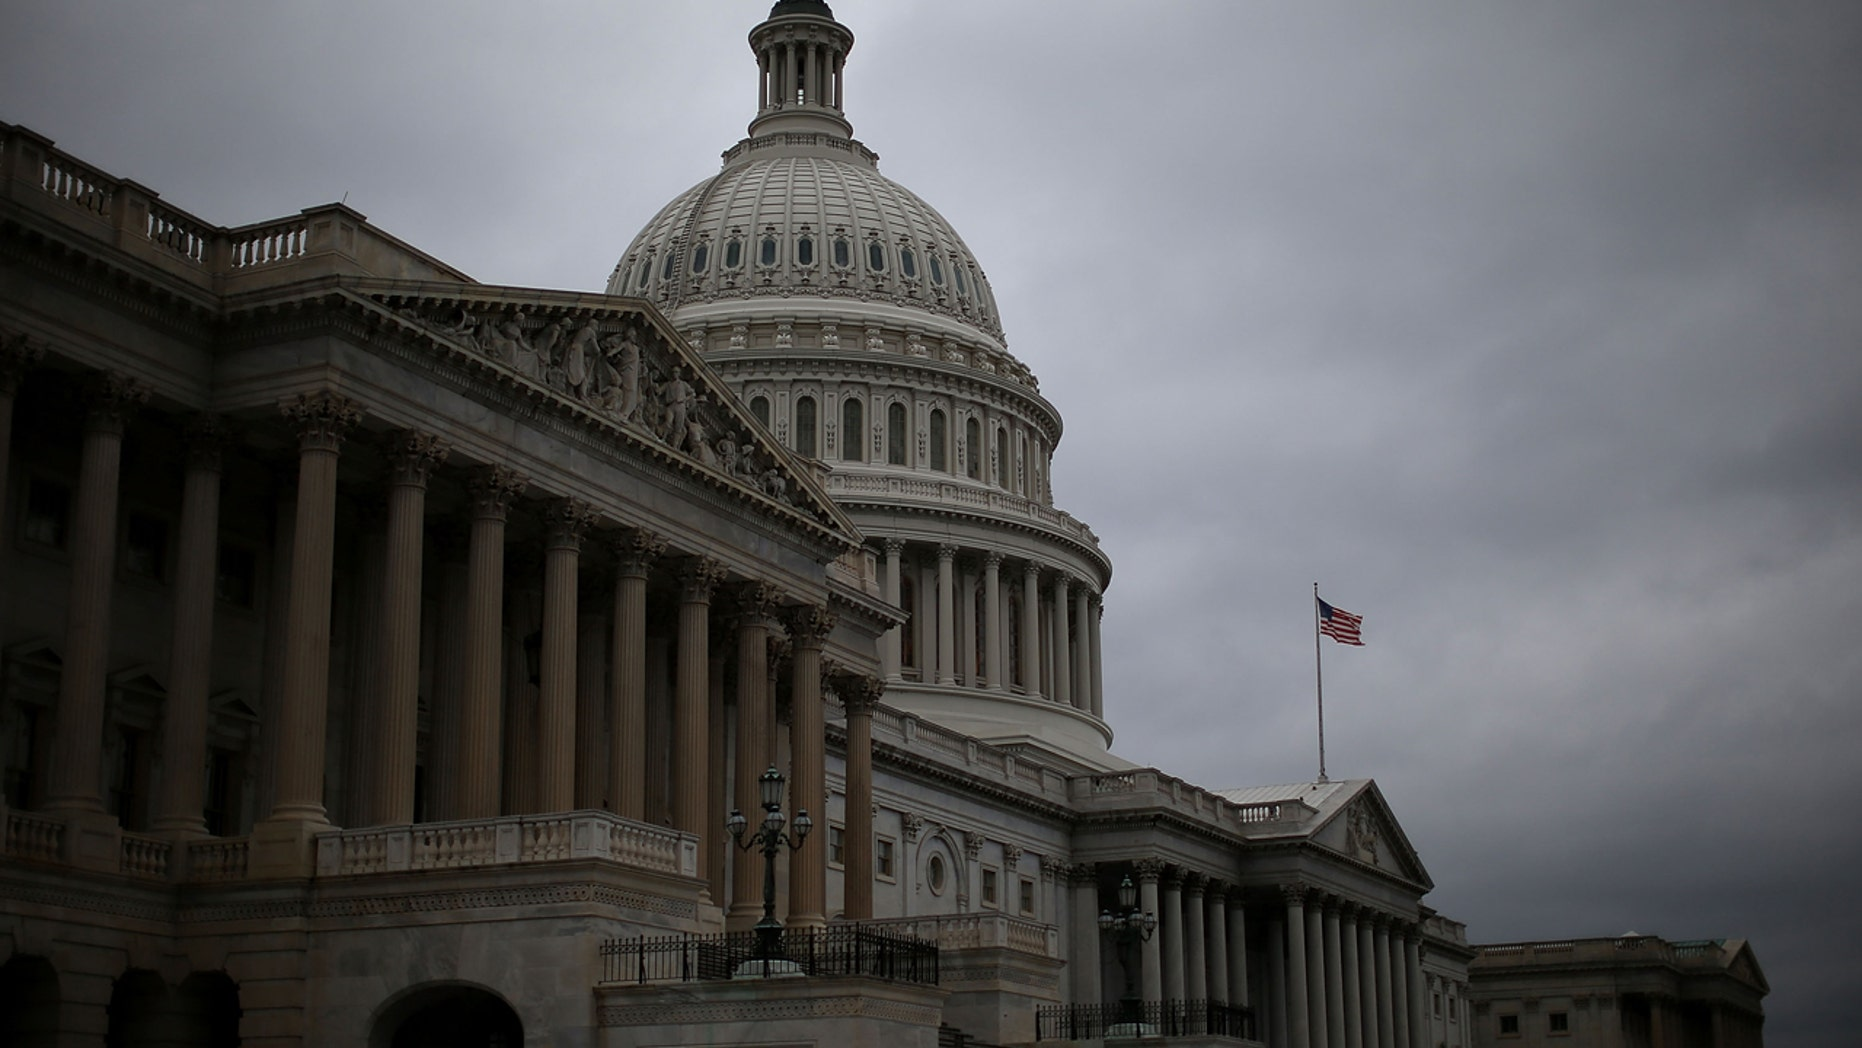 Clouds fill the sky in front of the U.S. Capitol on Oct. 7, 2013 in Washington, D.C. (Getty Images)